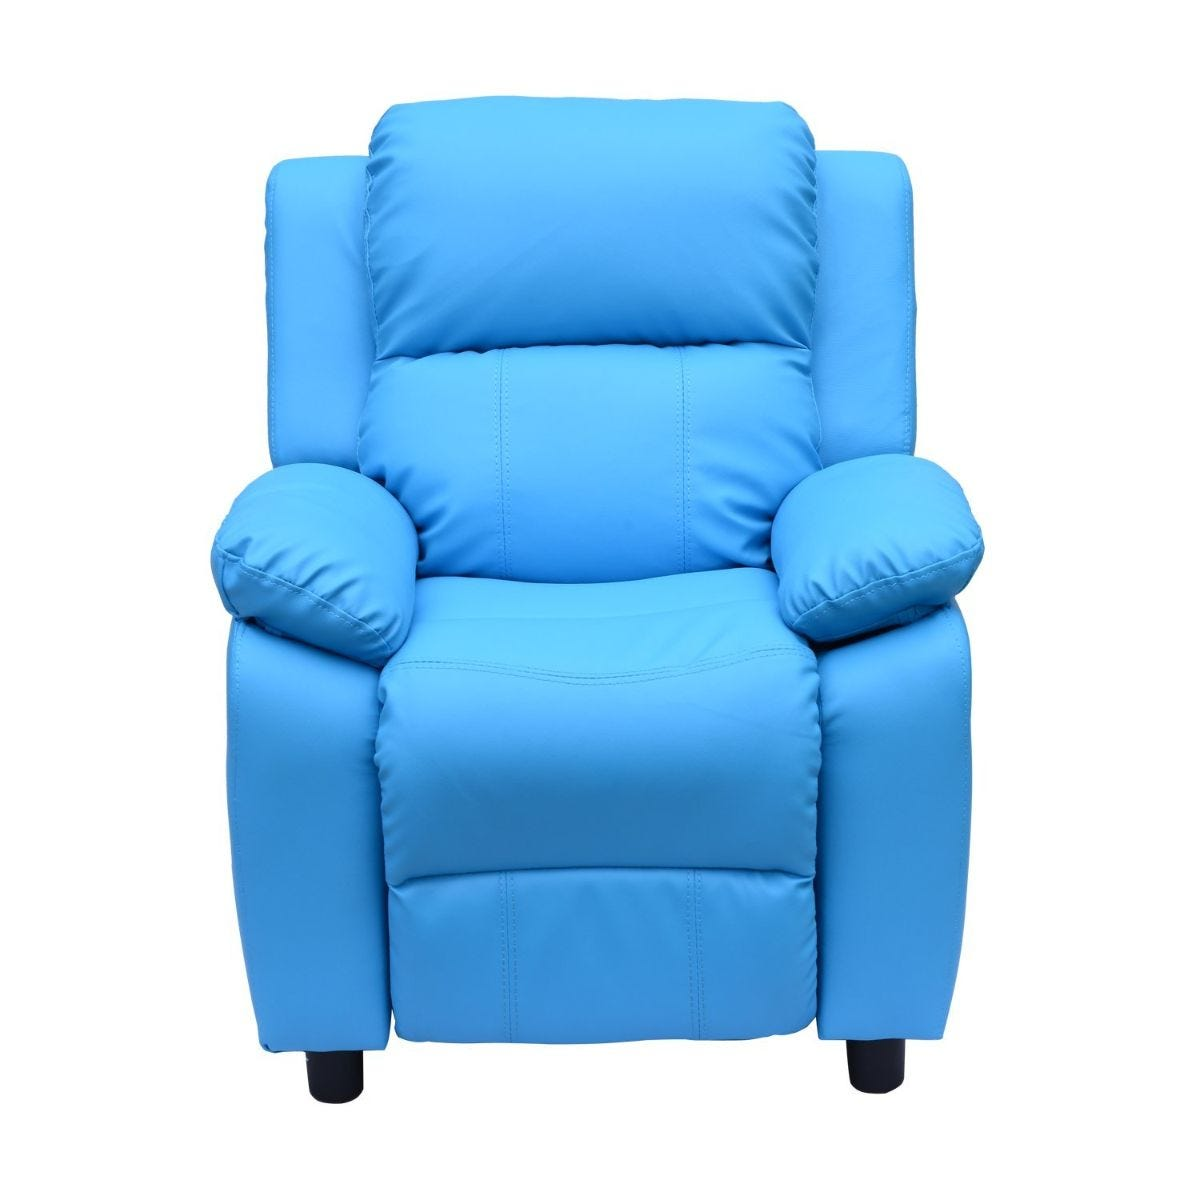 Kids Recliner Armchair Game Chair Sofa Faux Leather Blue